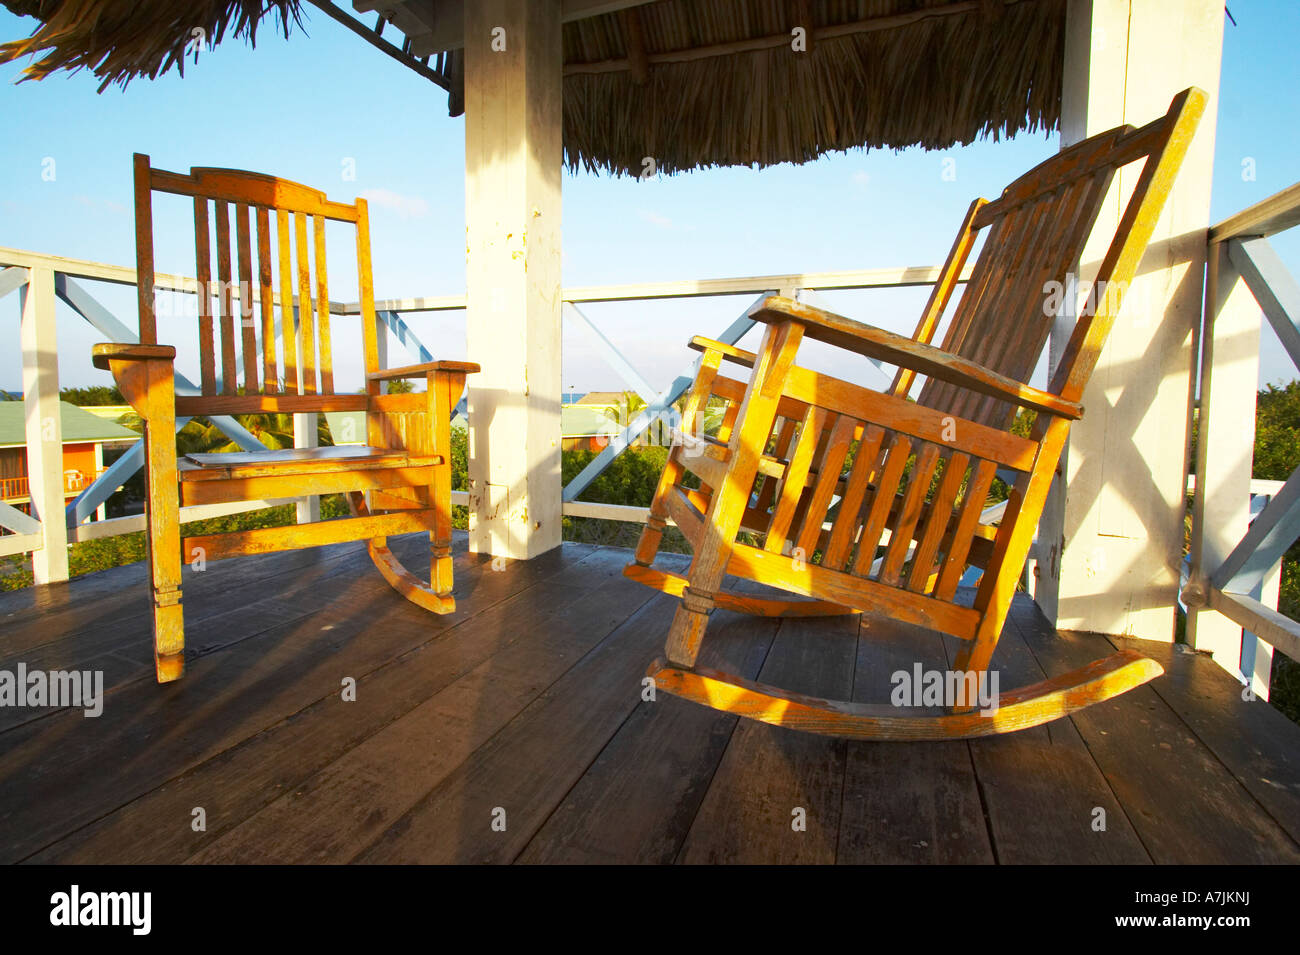 Rocking Chairs Stock Photos & Rocking Chairs Stock Images - Alamy